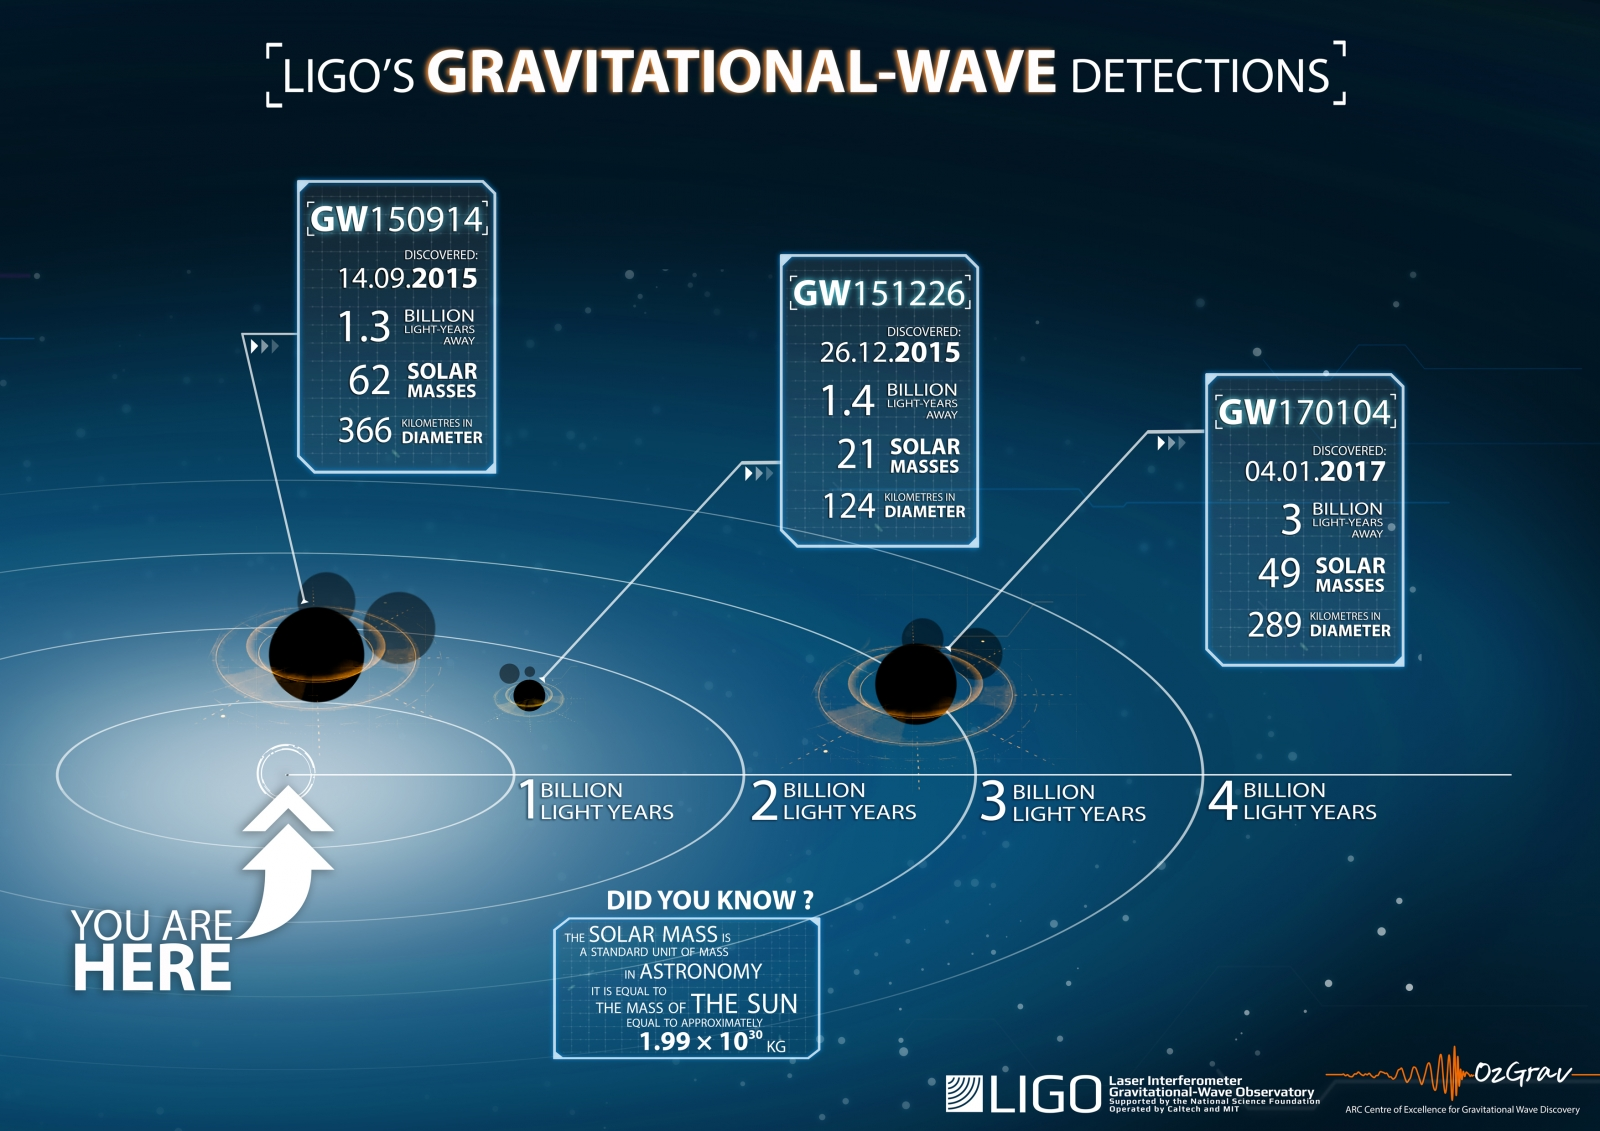 Synopsis: LIGO Picks Up on the Third Ring